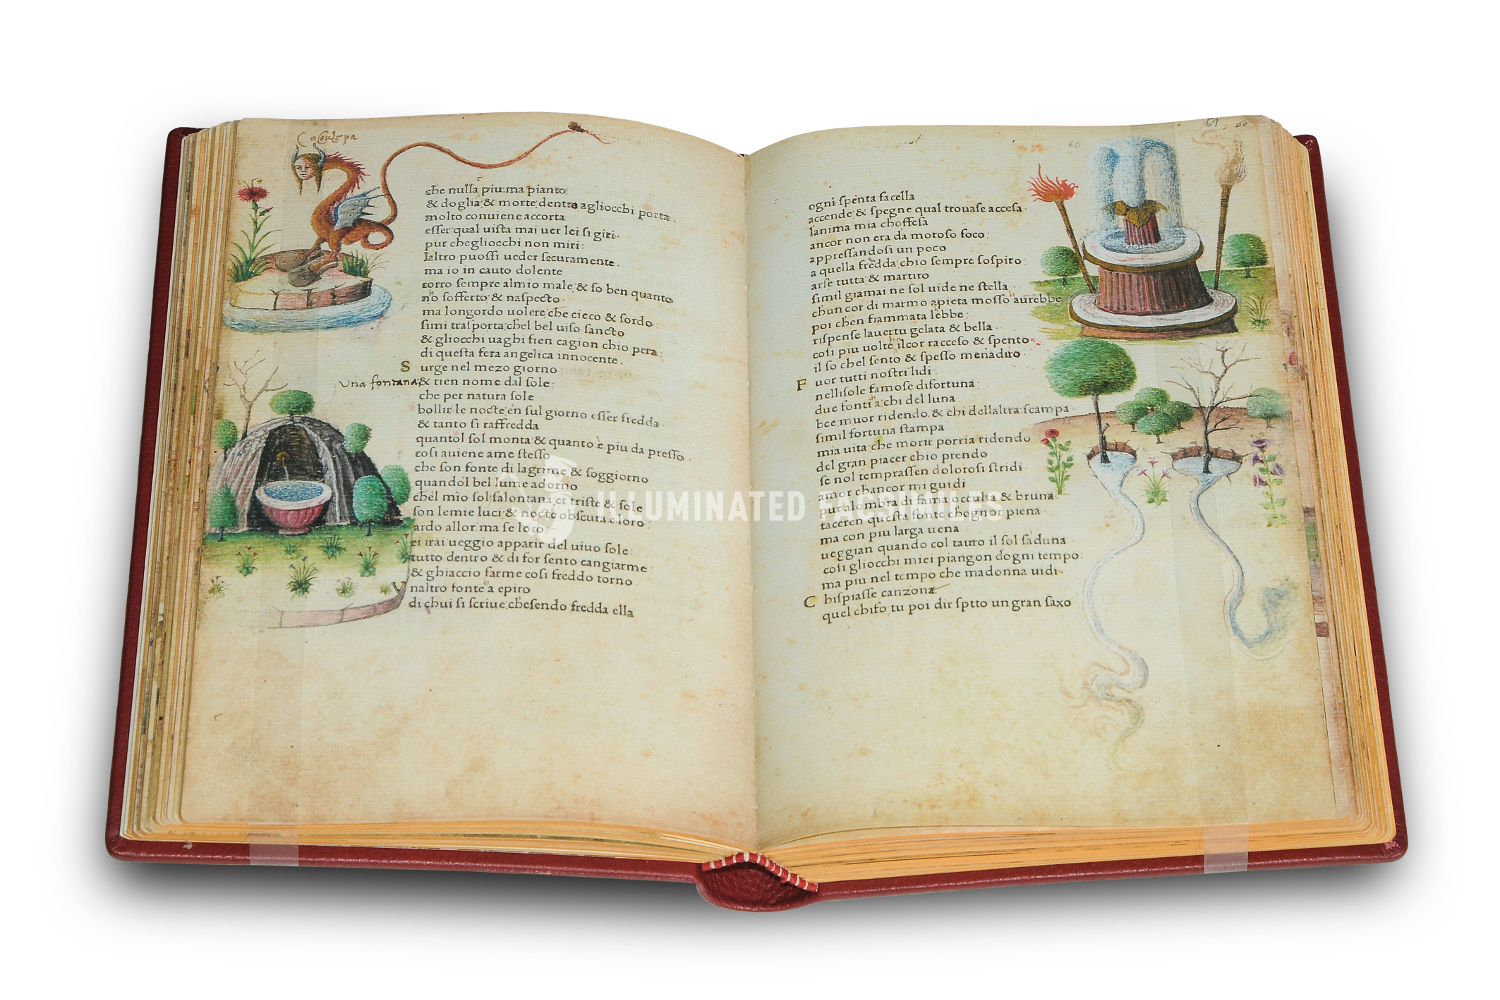 ILLUMINATED FACSIMILES®, Salerno Editrice – Petrarca Queriniano – photo 11, copyright Illuminated Facsimiles